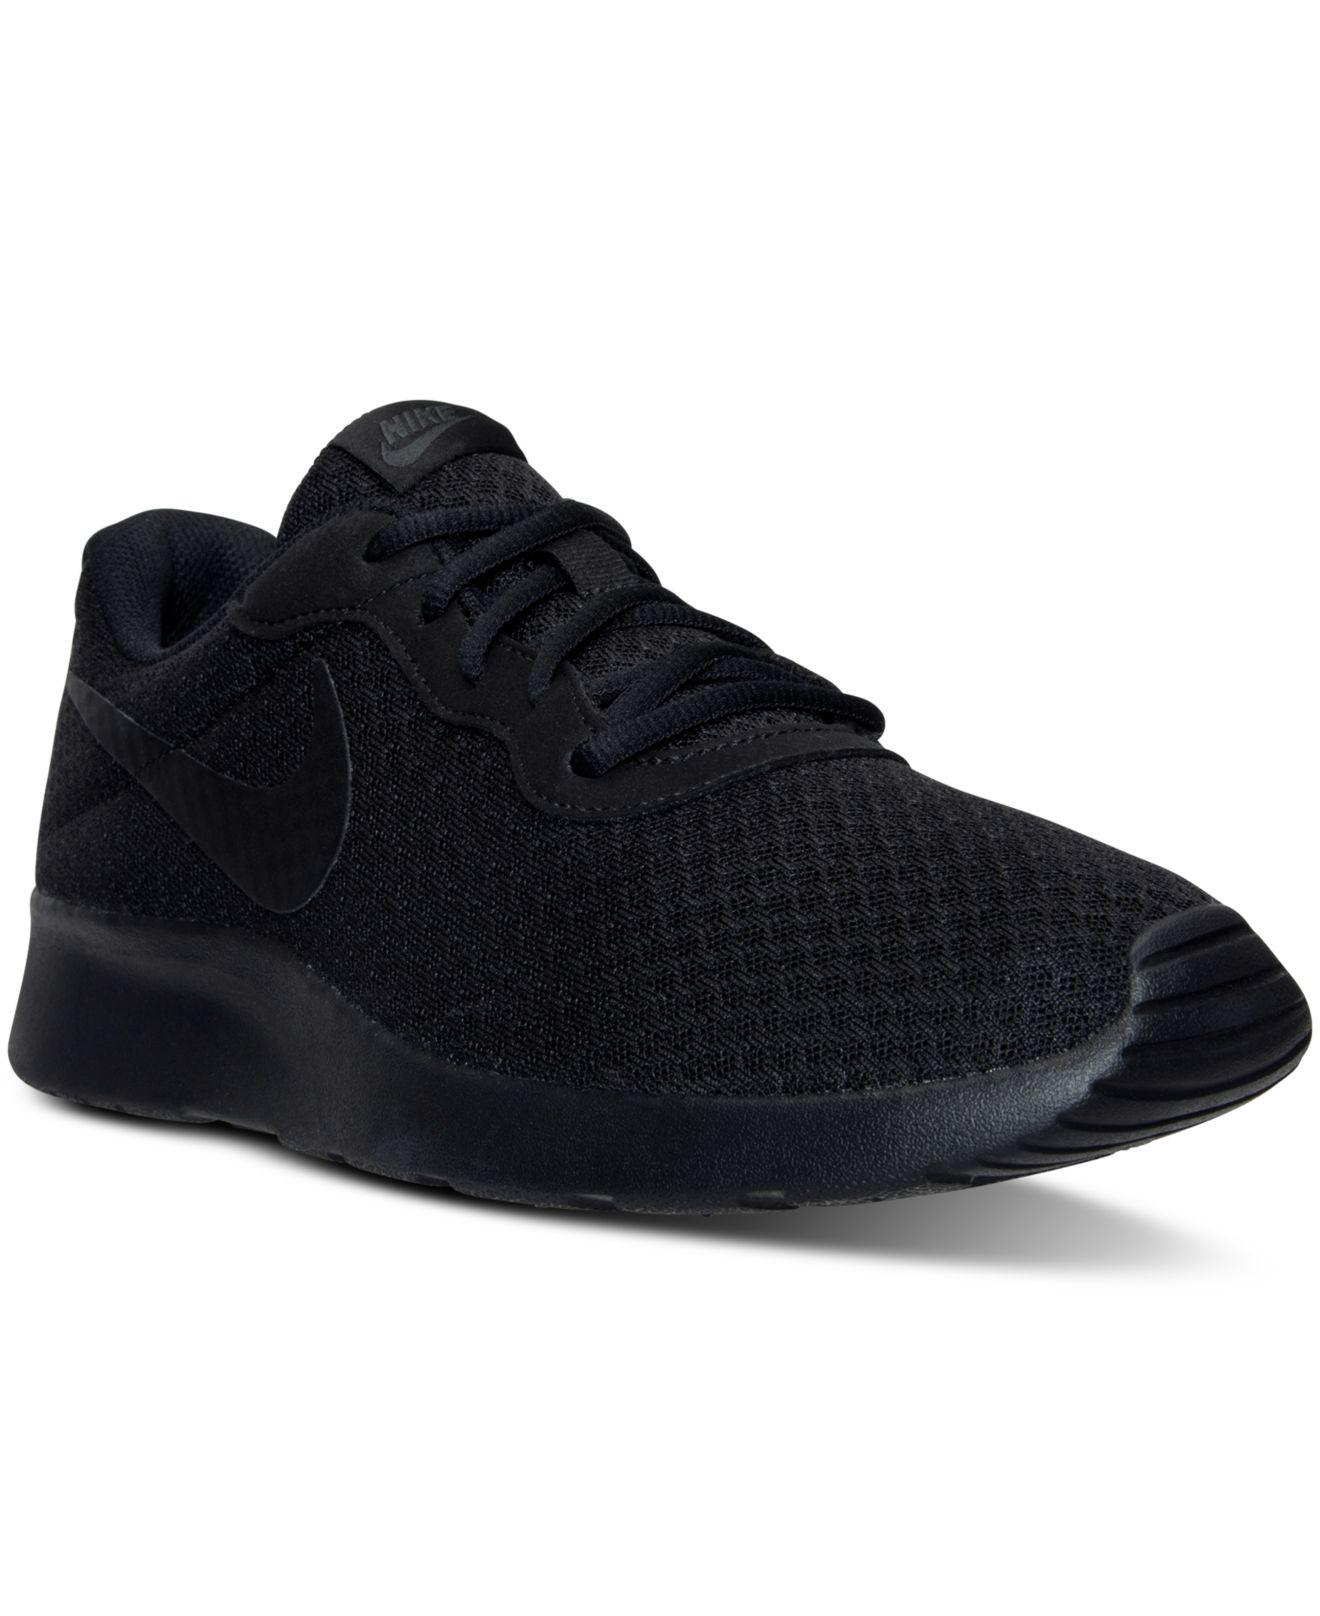 Nike. Black Men's Tanjun Casual Sneakers From Finish Line